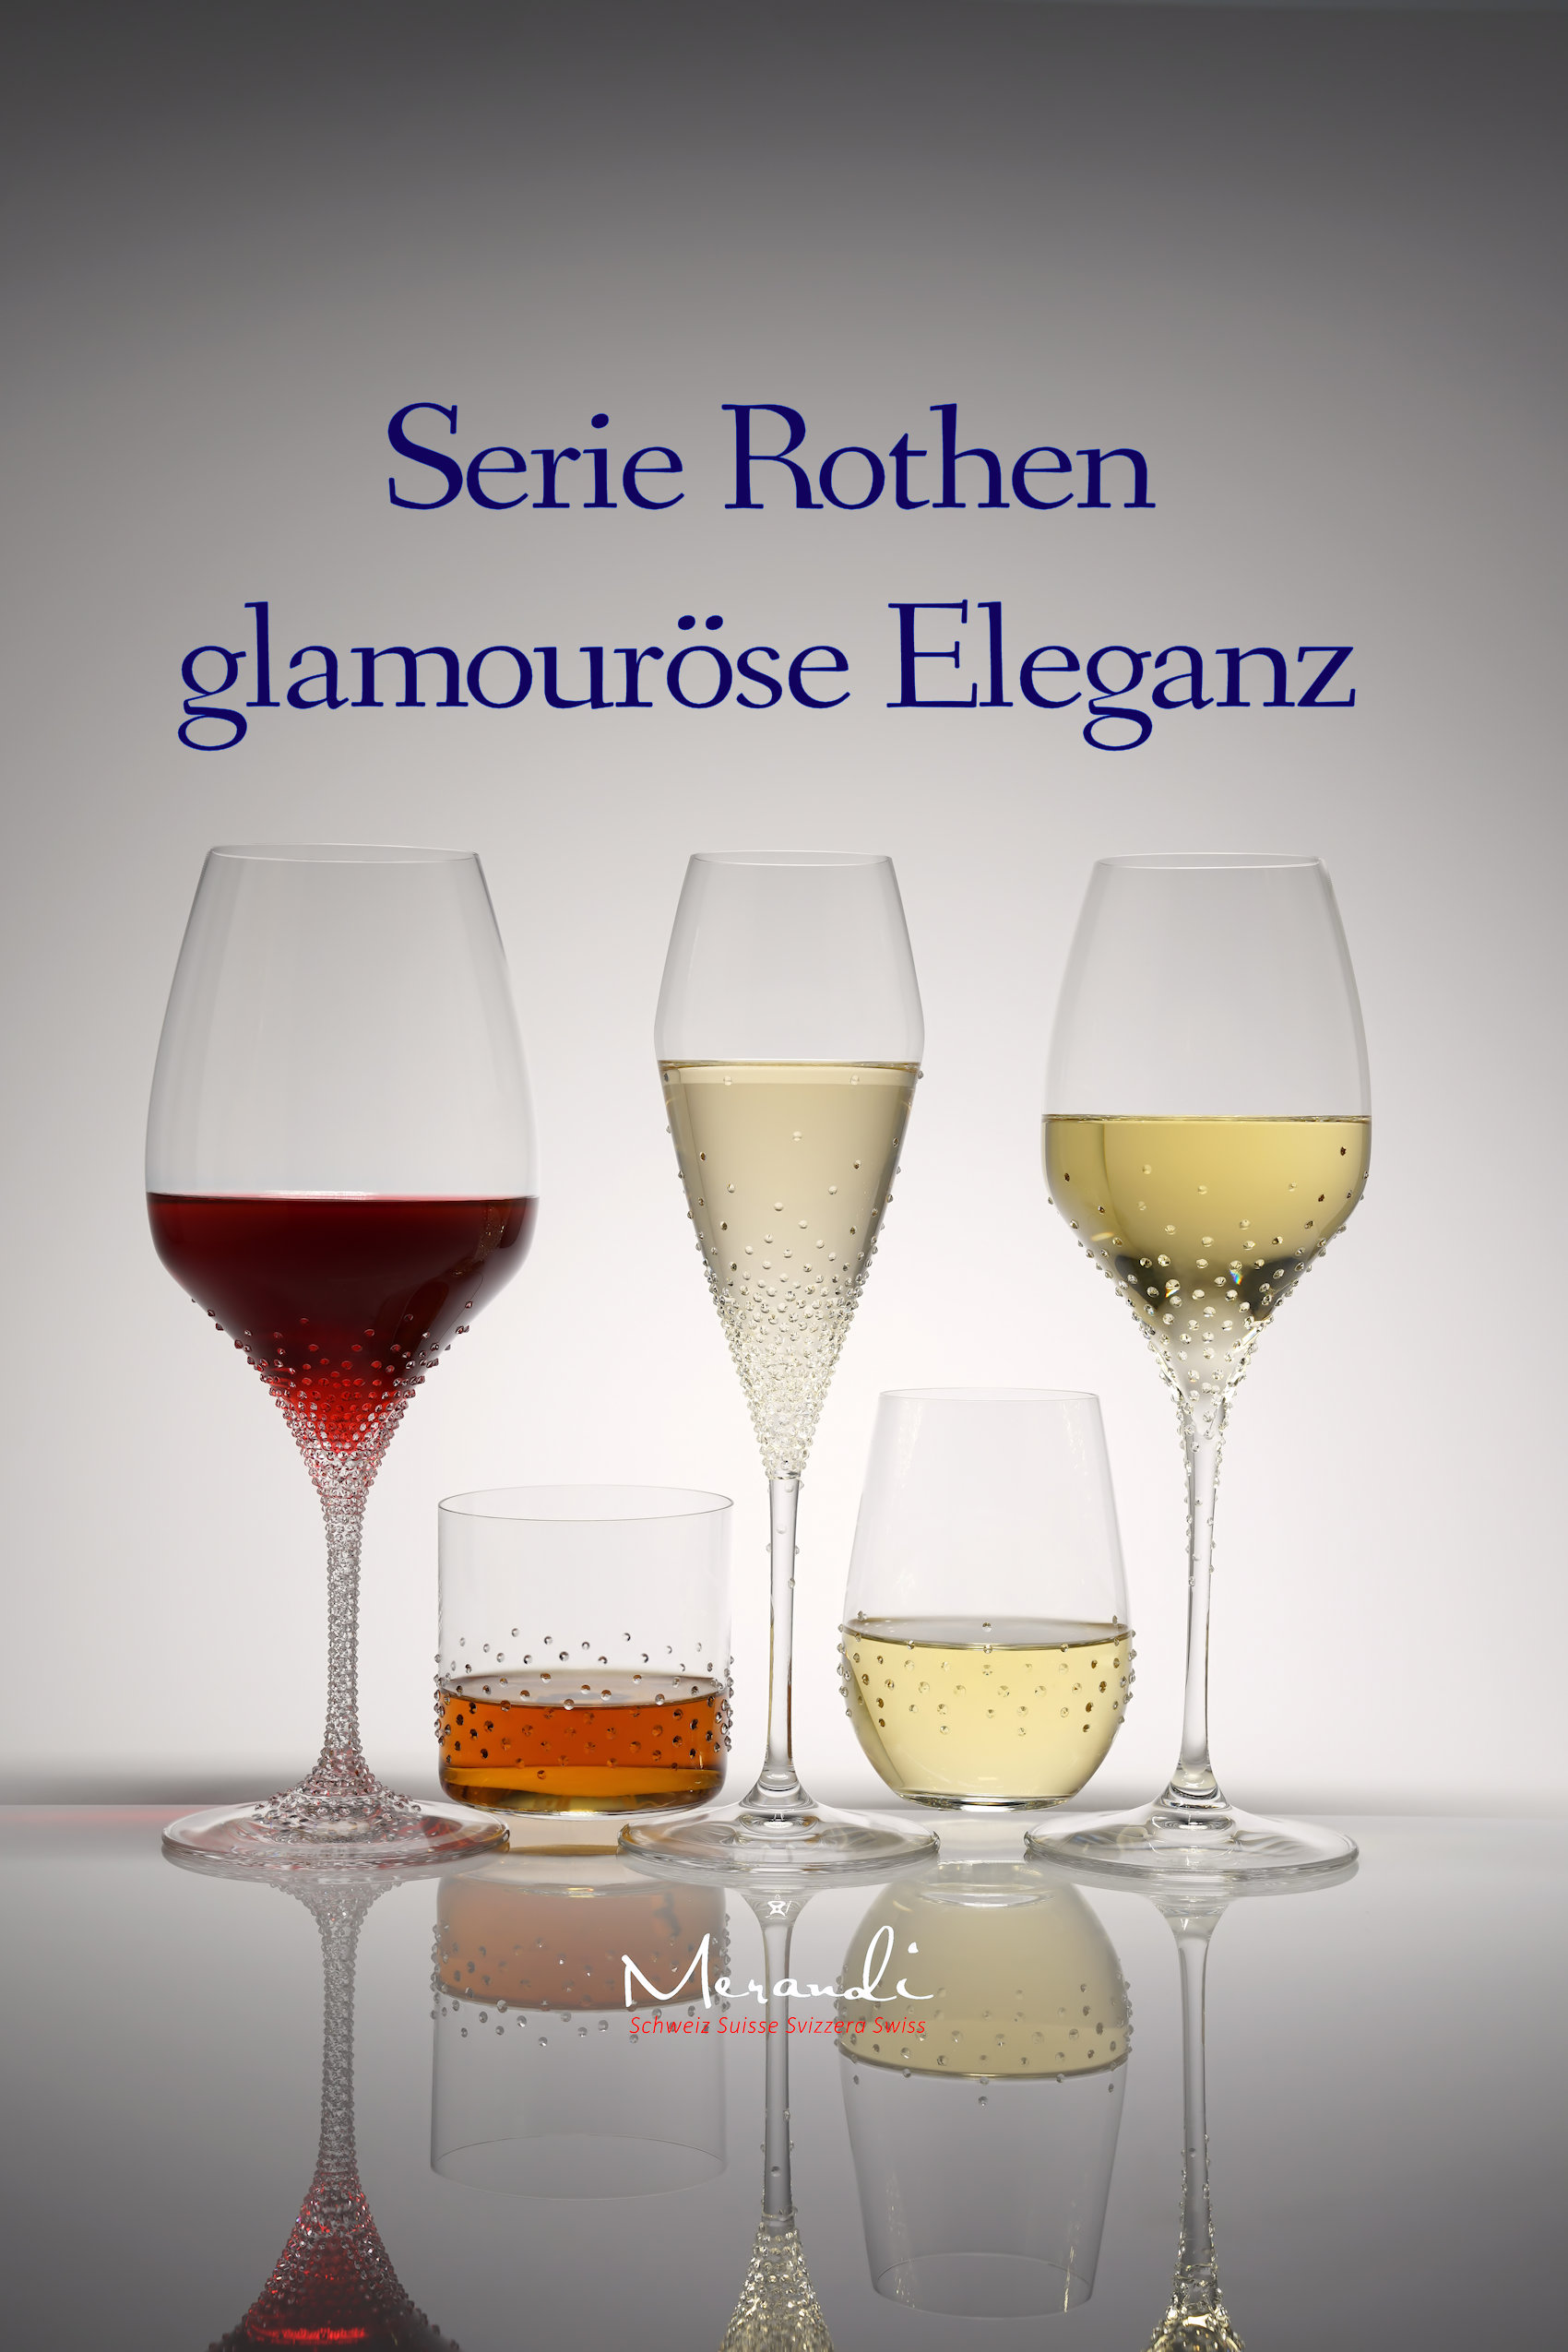 Glass series Rothen, Merandi Switzerland, Riedel® glasses refined with Swarovski® crystals